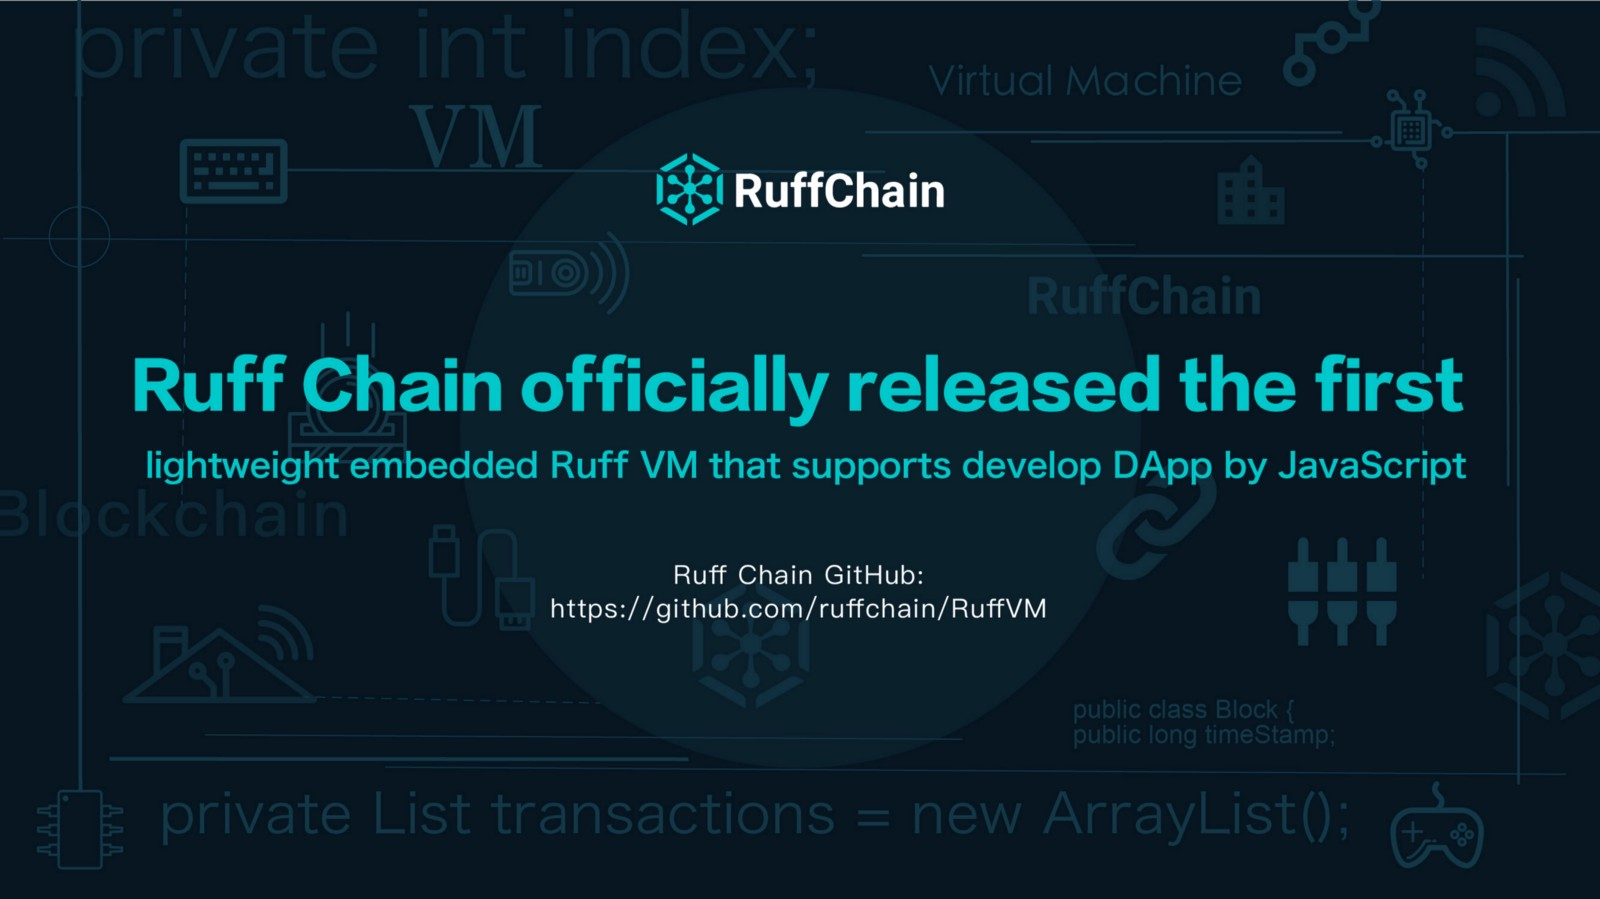 Ruff Chain officially released the first lightweight